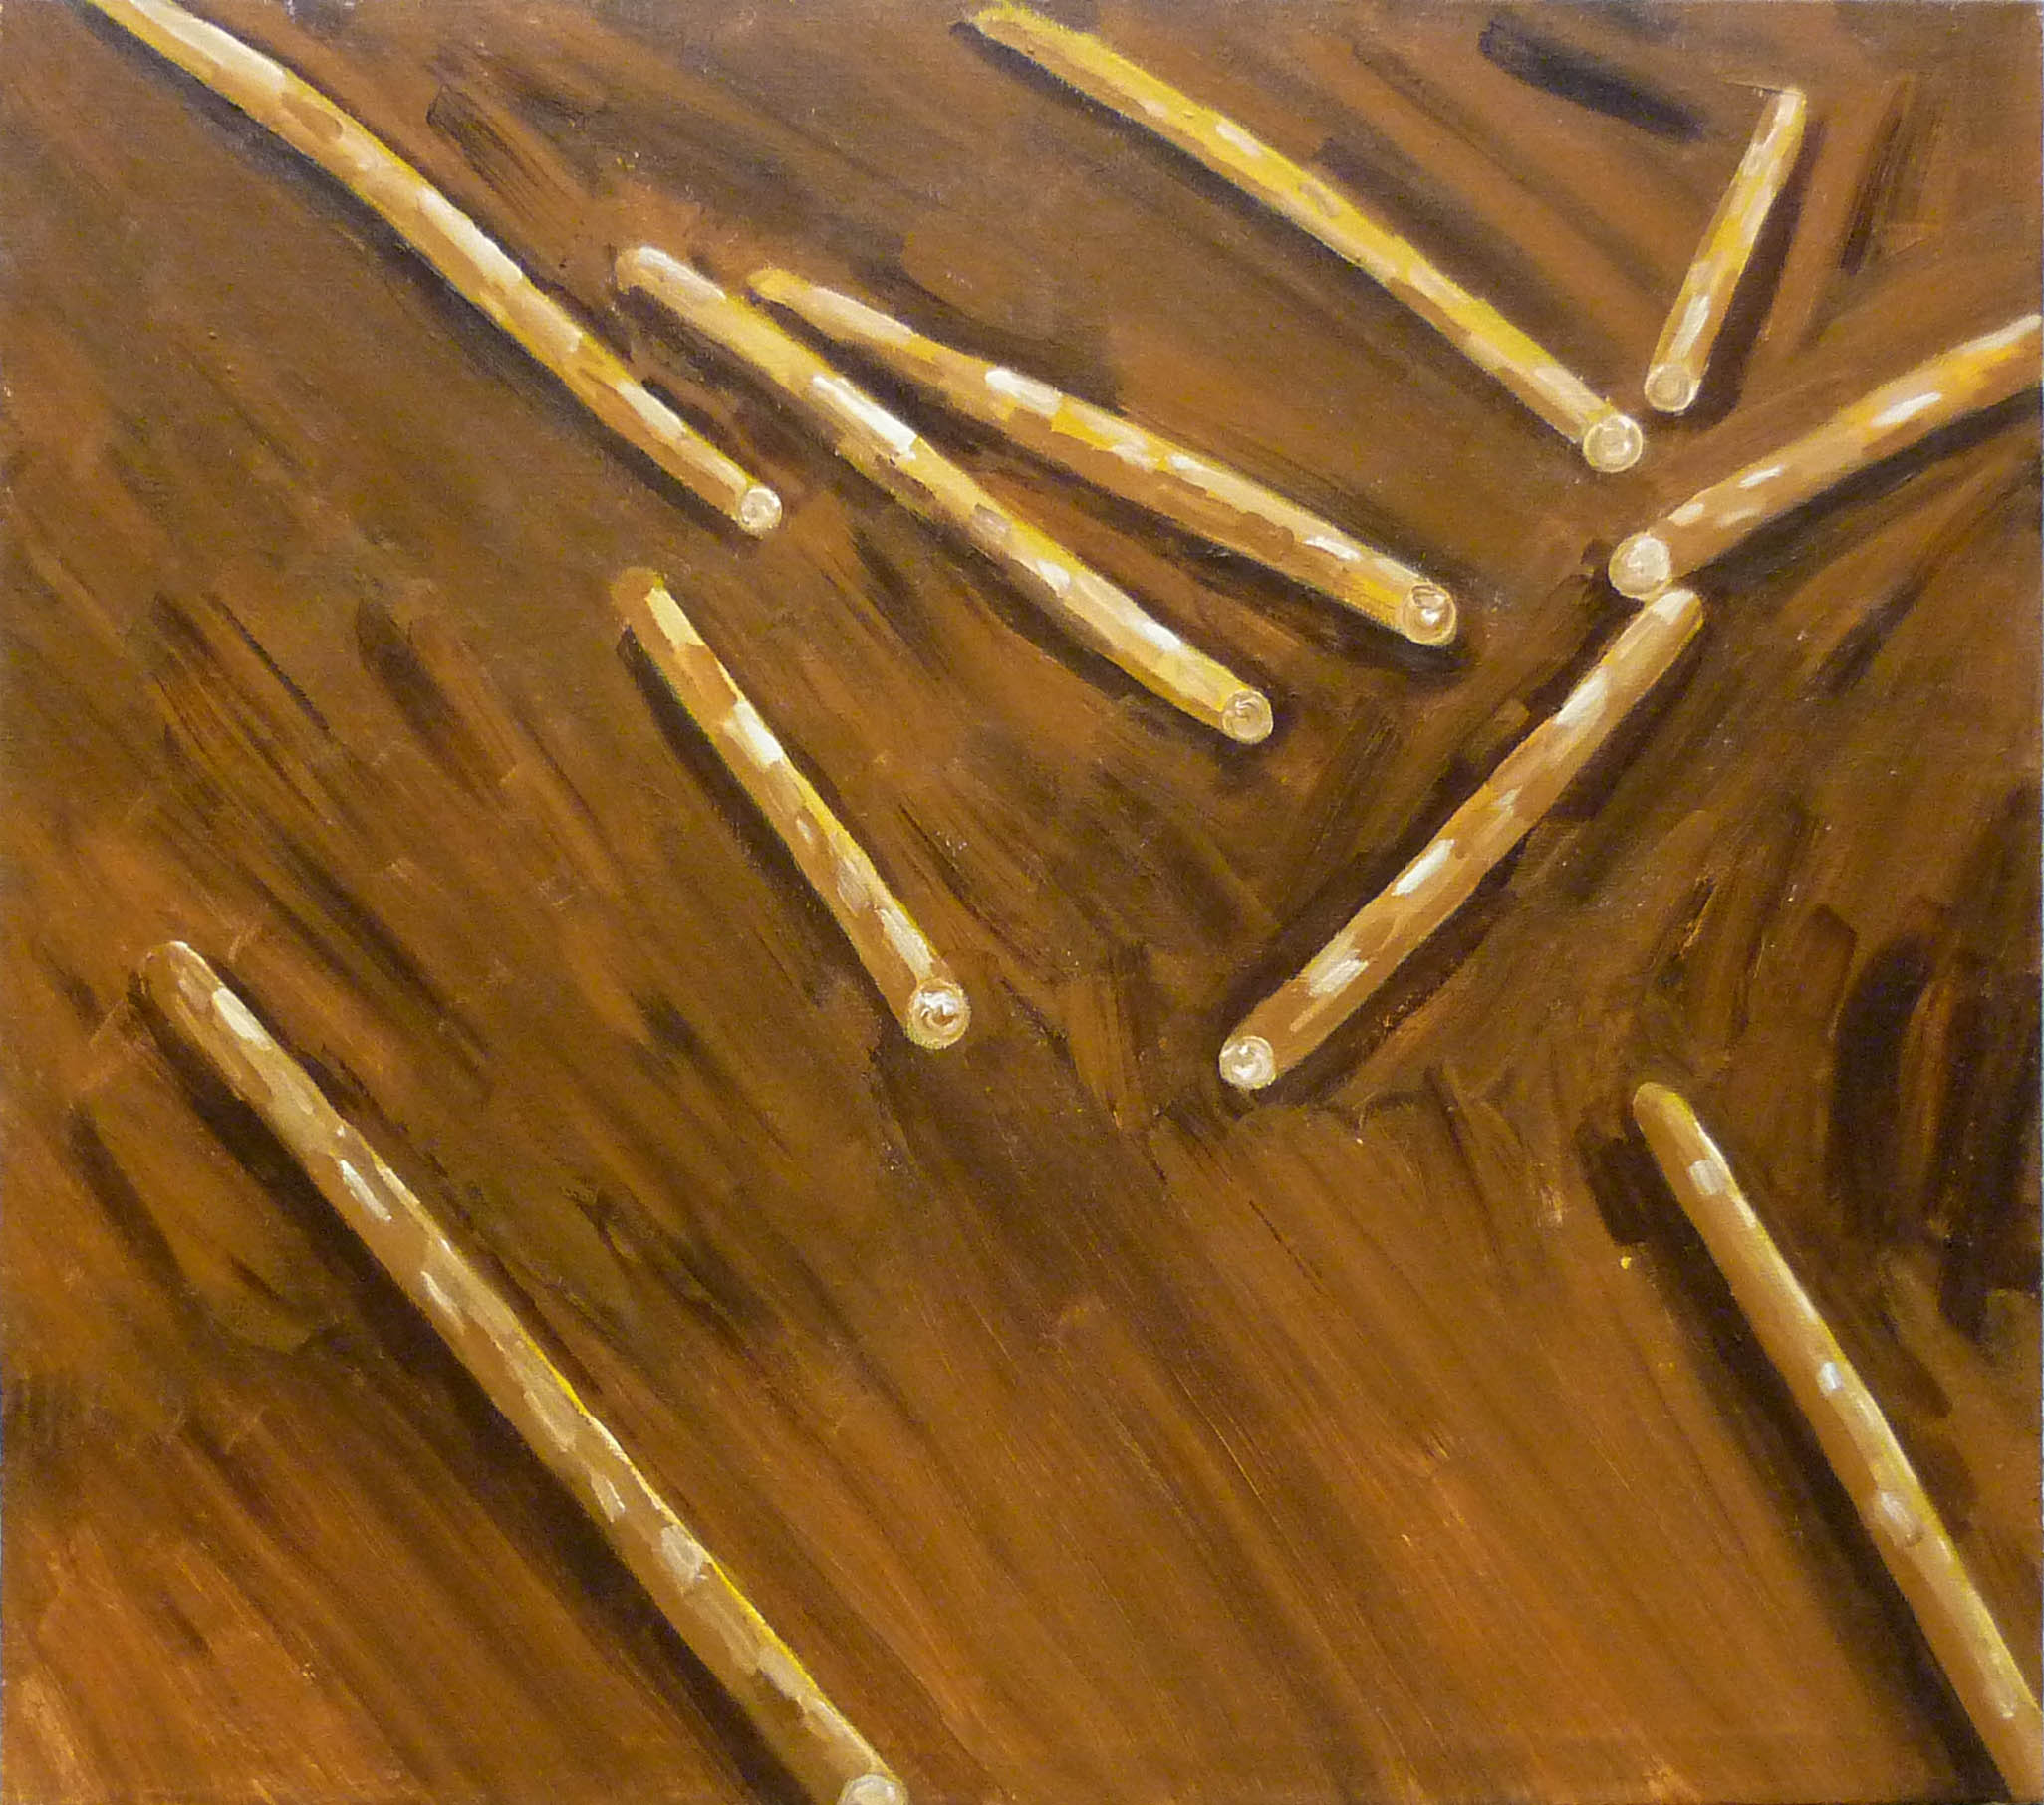 finské dřevo / finnish wood, akryl na plátně / acrylic on canvas, 135x120 cm, 2012